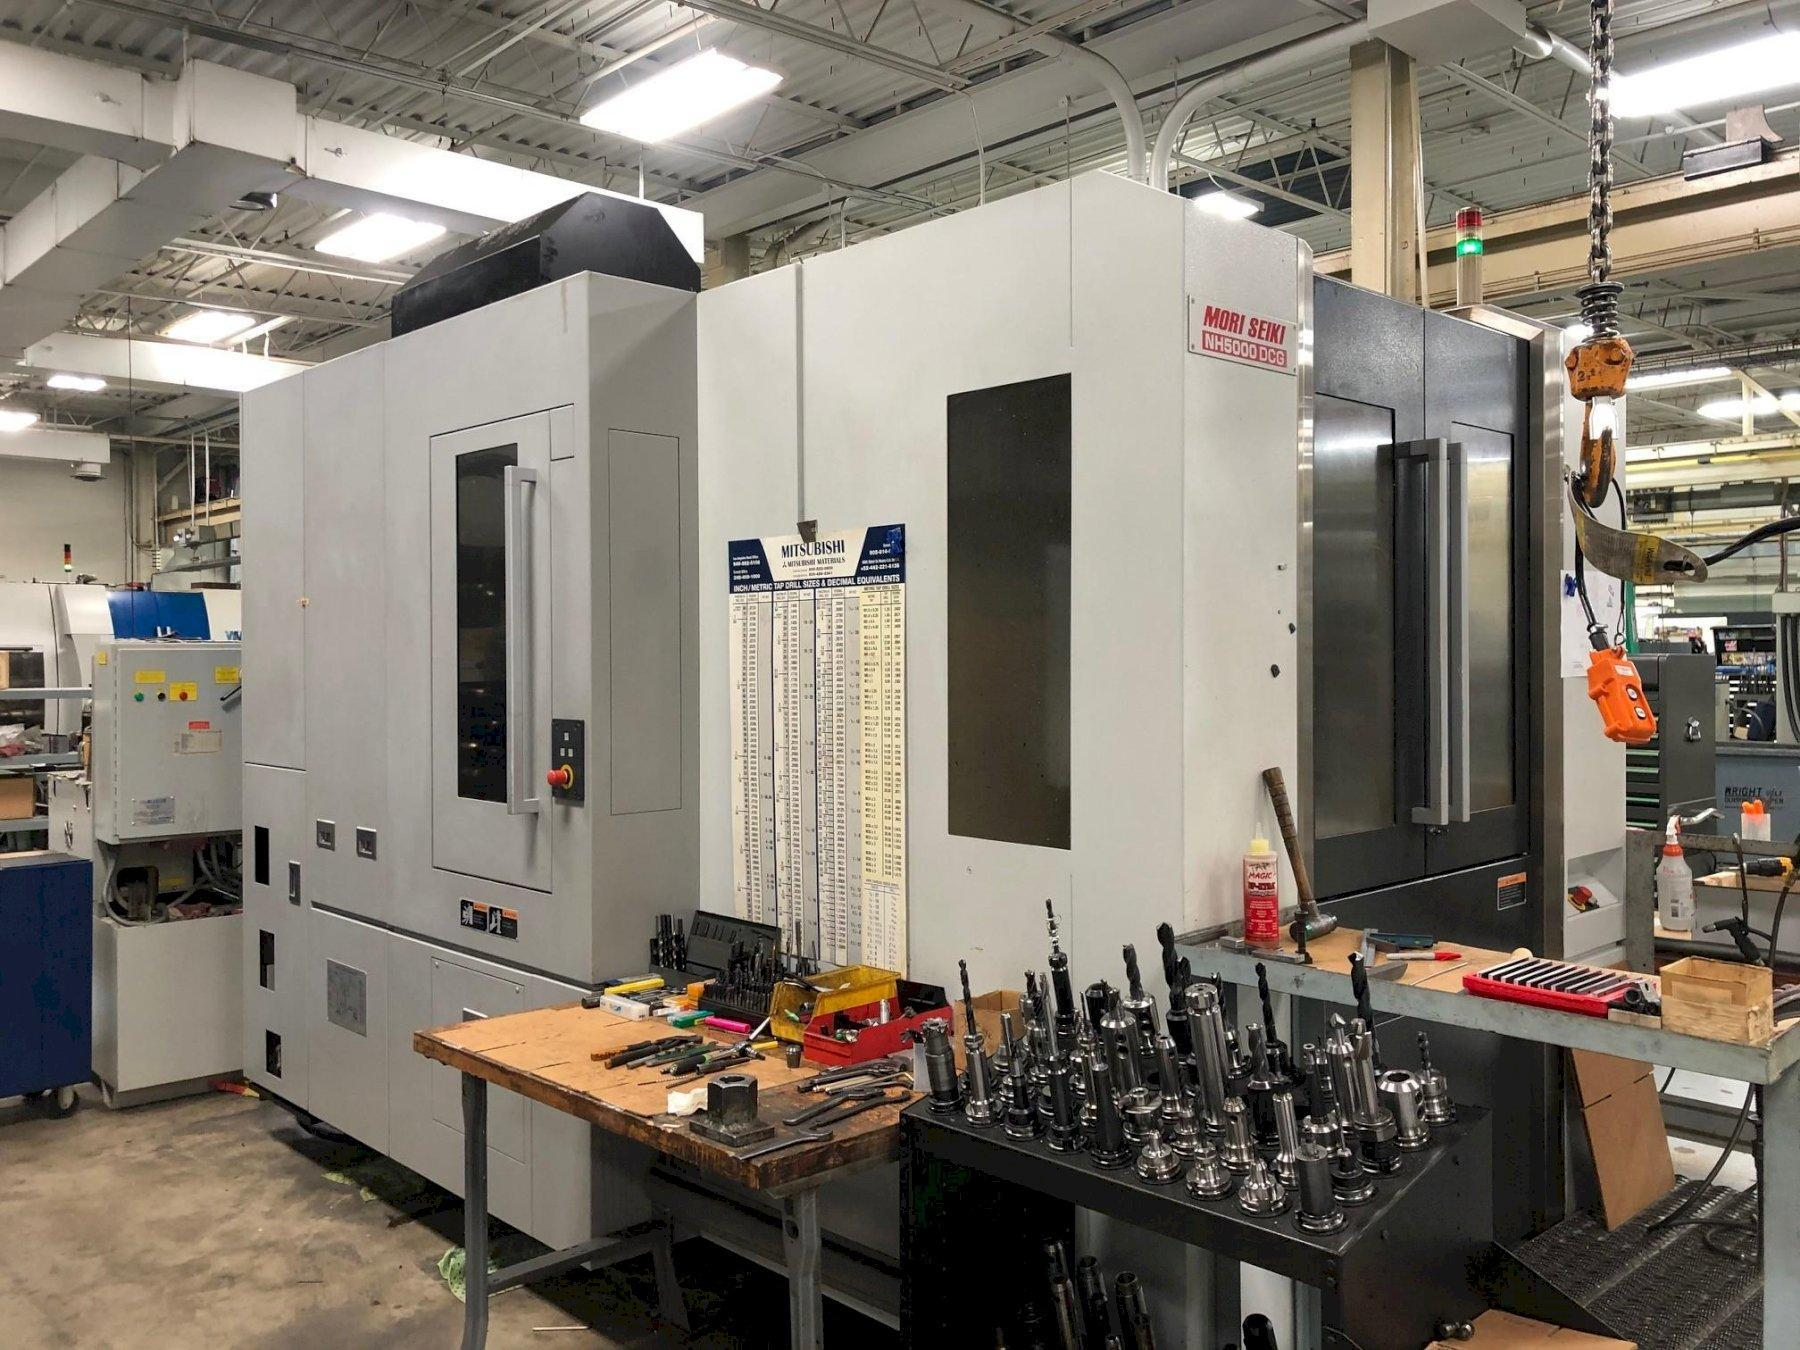 Mori Seiki NH-5000dcg CNC Horizontal Machining Center